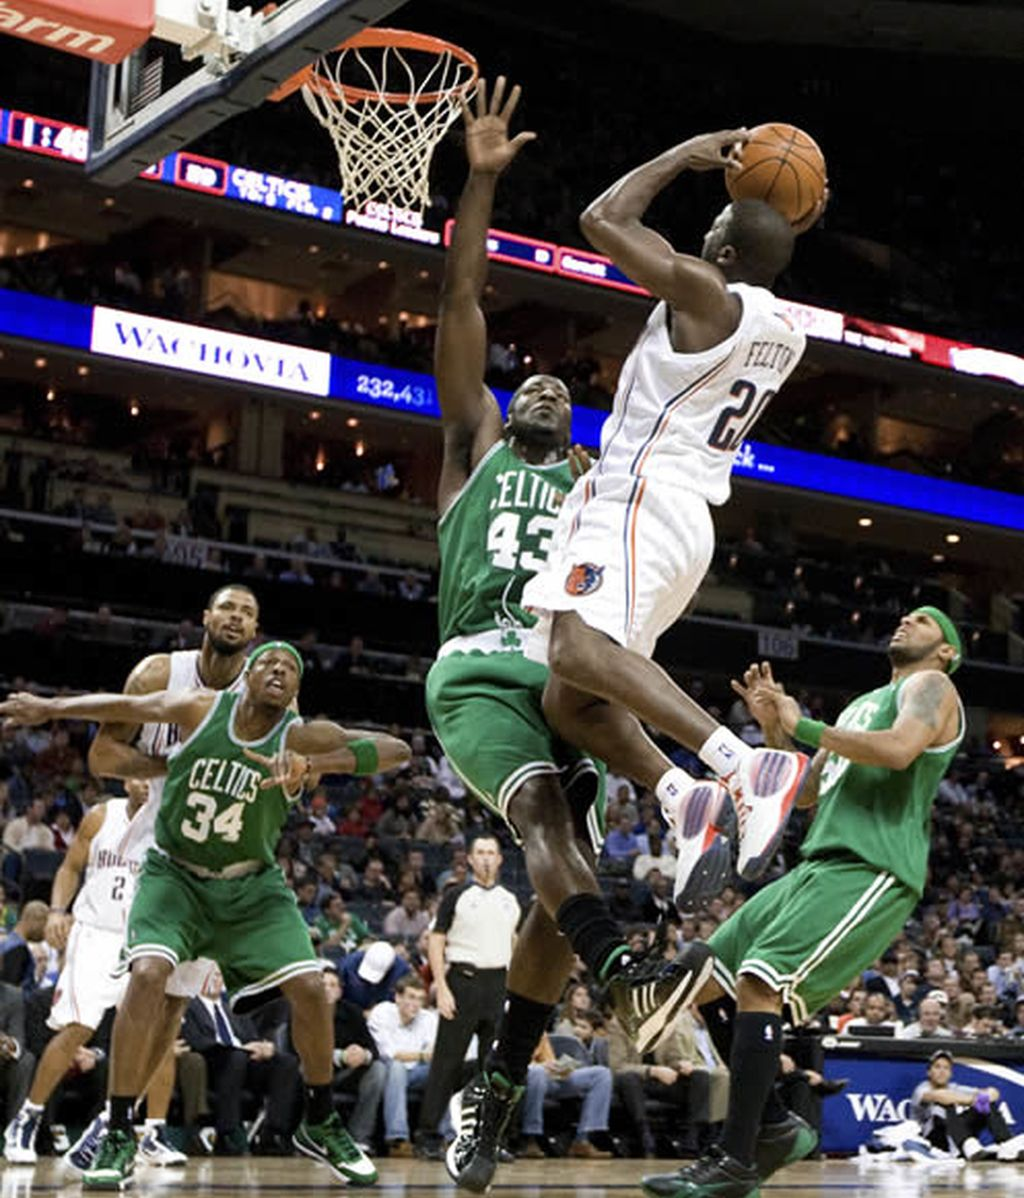 Boston Celtics vs Charlotte Bobcats